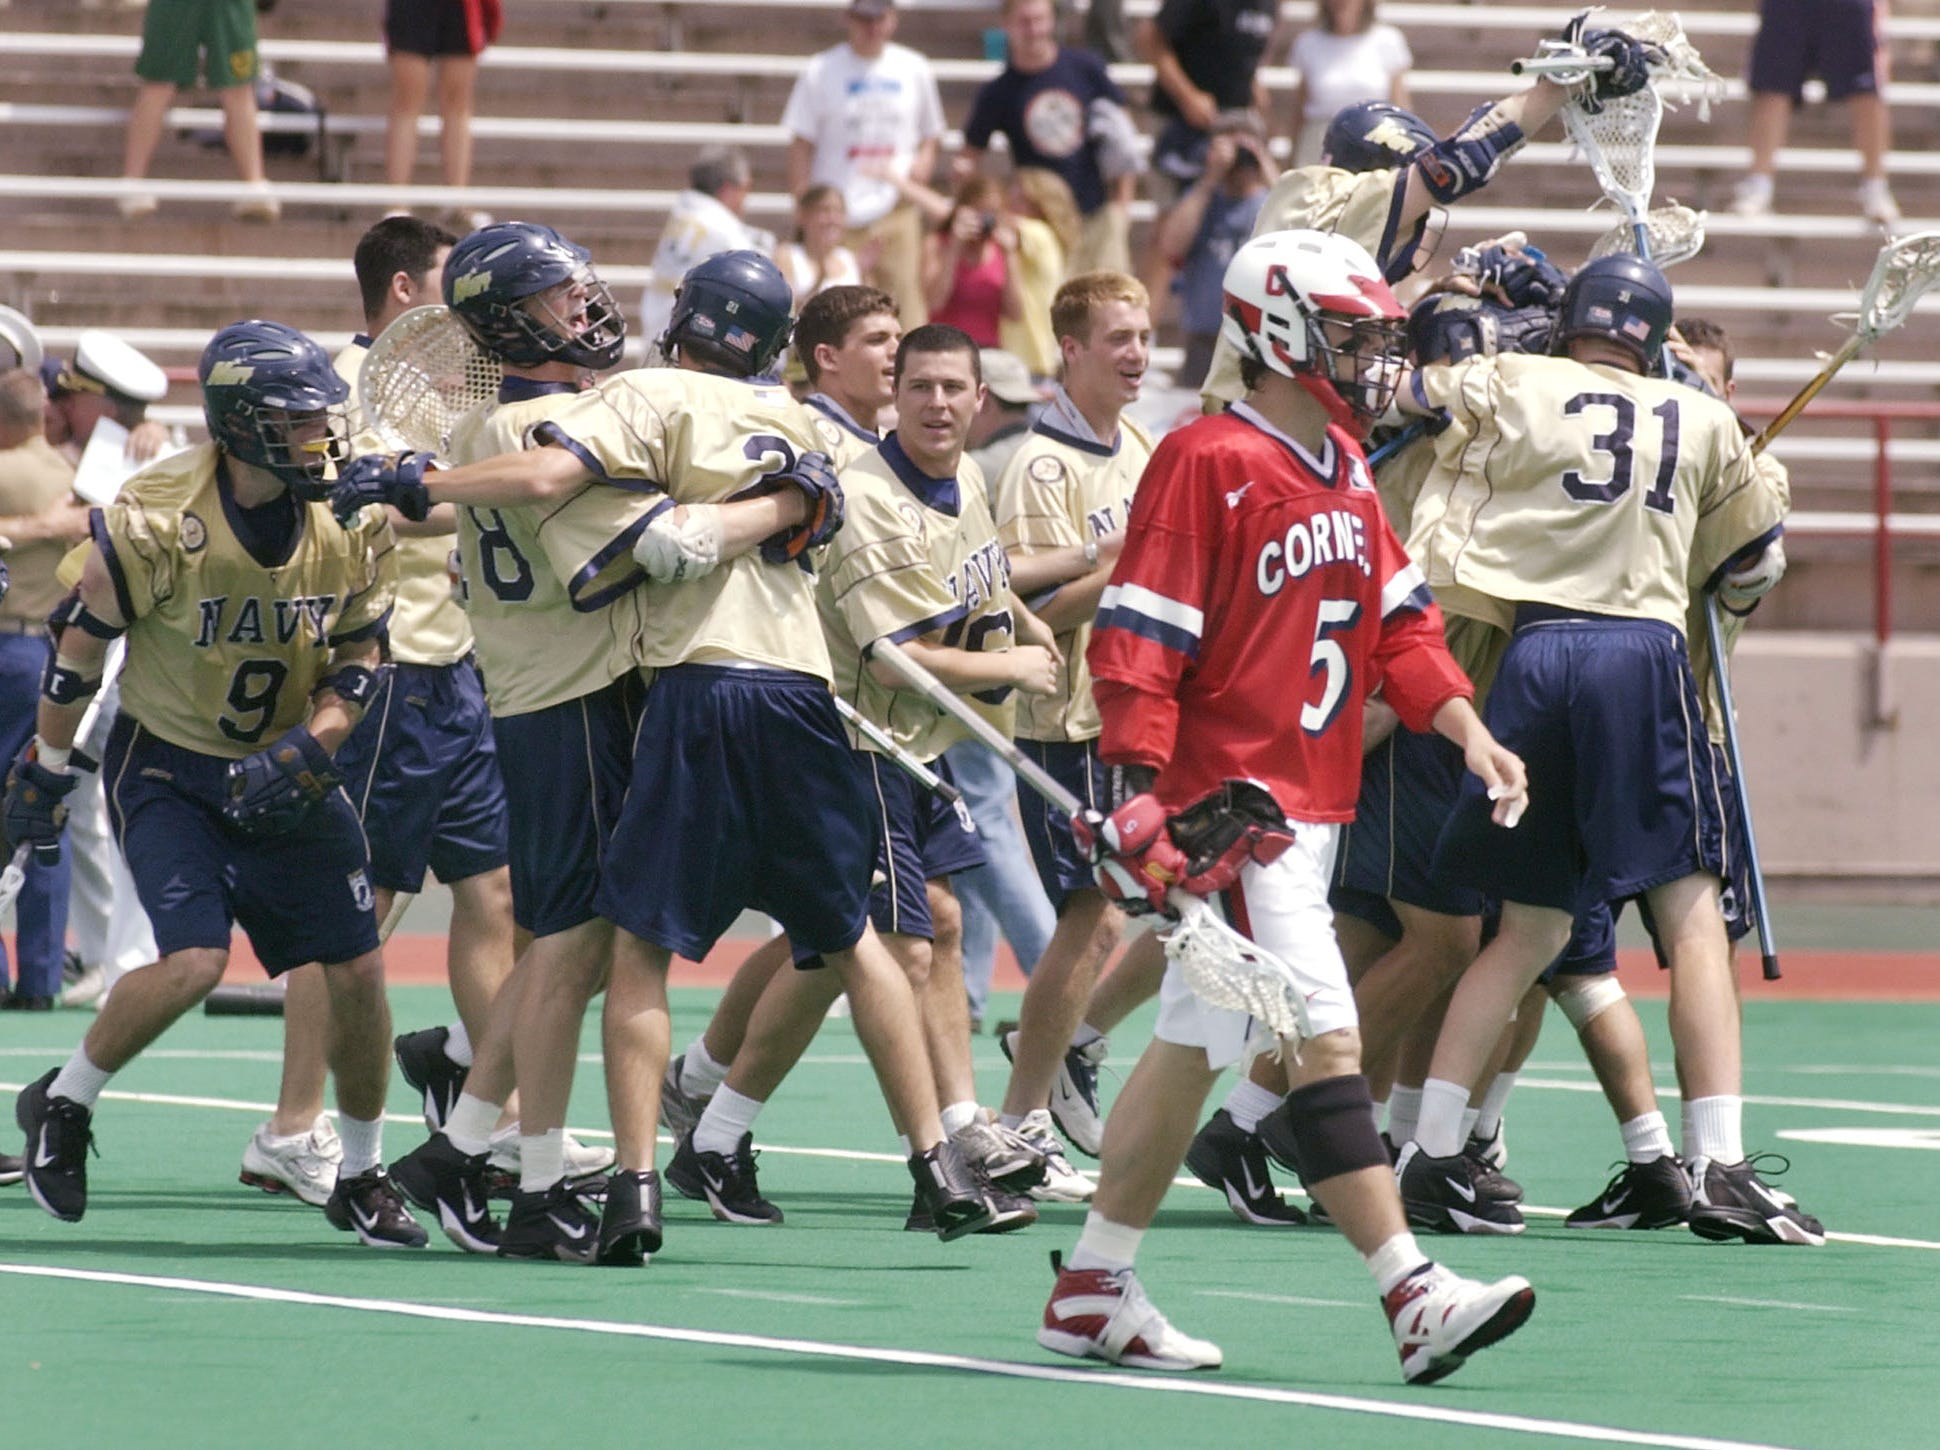 Navy players celebrate their 6-5 win in the quarterfinals of the NCAA Division I lacrosse championships as Cornell's Scott Raasch (5) walks off the field in Ithaca, N.Y., Sunday, May 23, 2004.